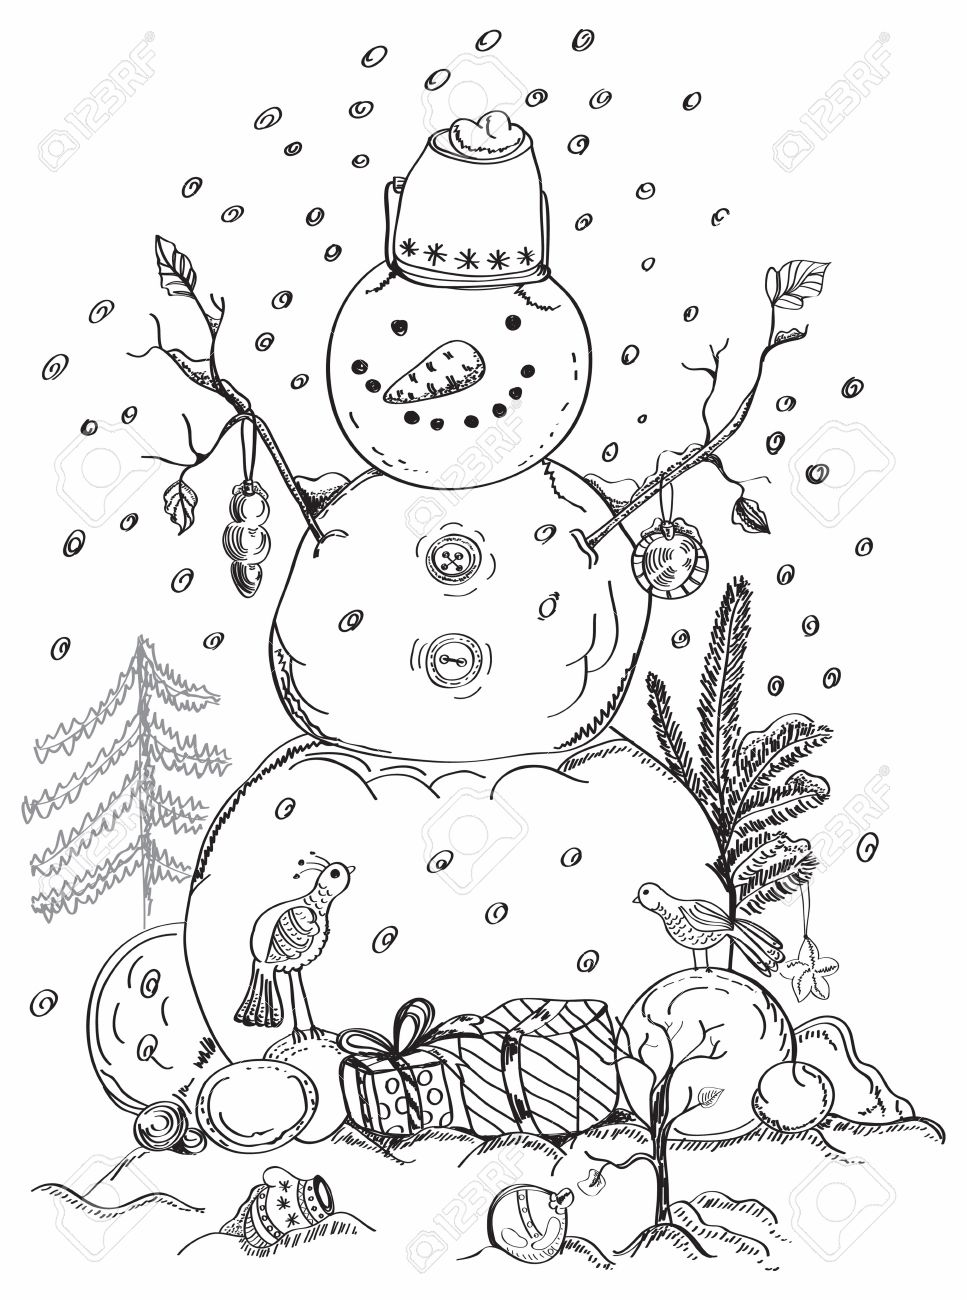 Christmas Card For Xmas Design With Balls Bird Gift And Hand Drawn Snowman Stock